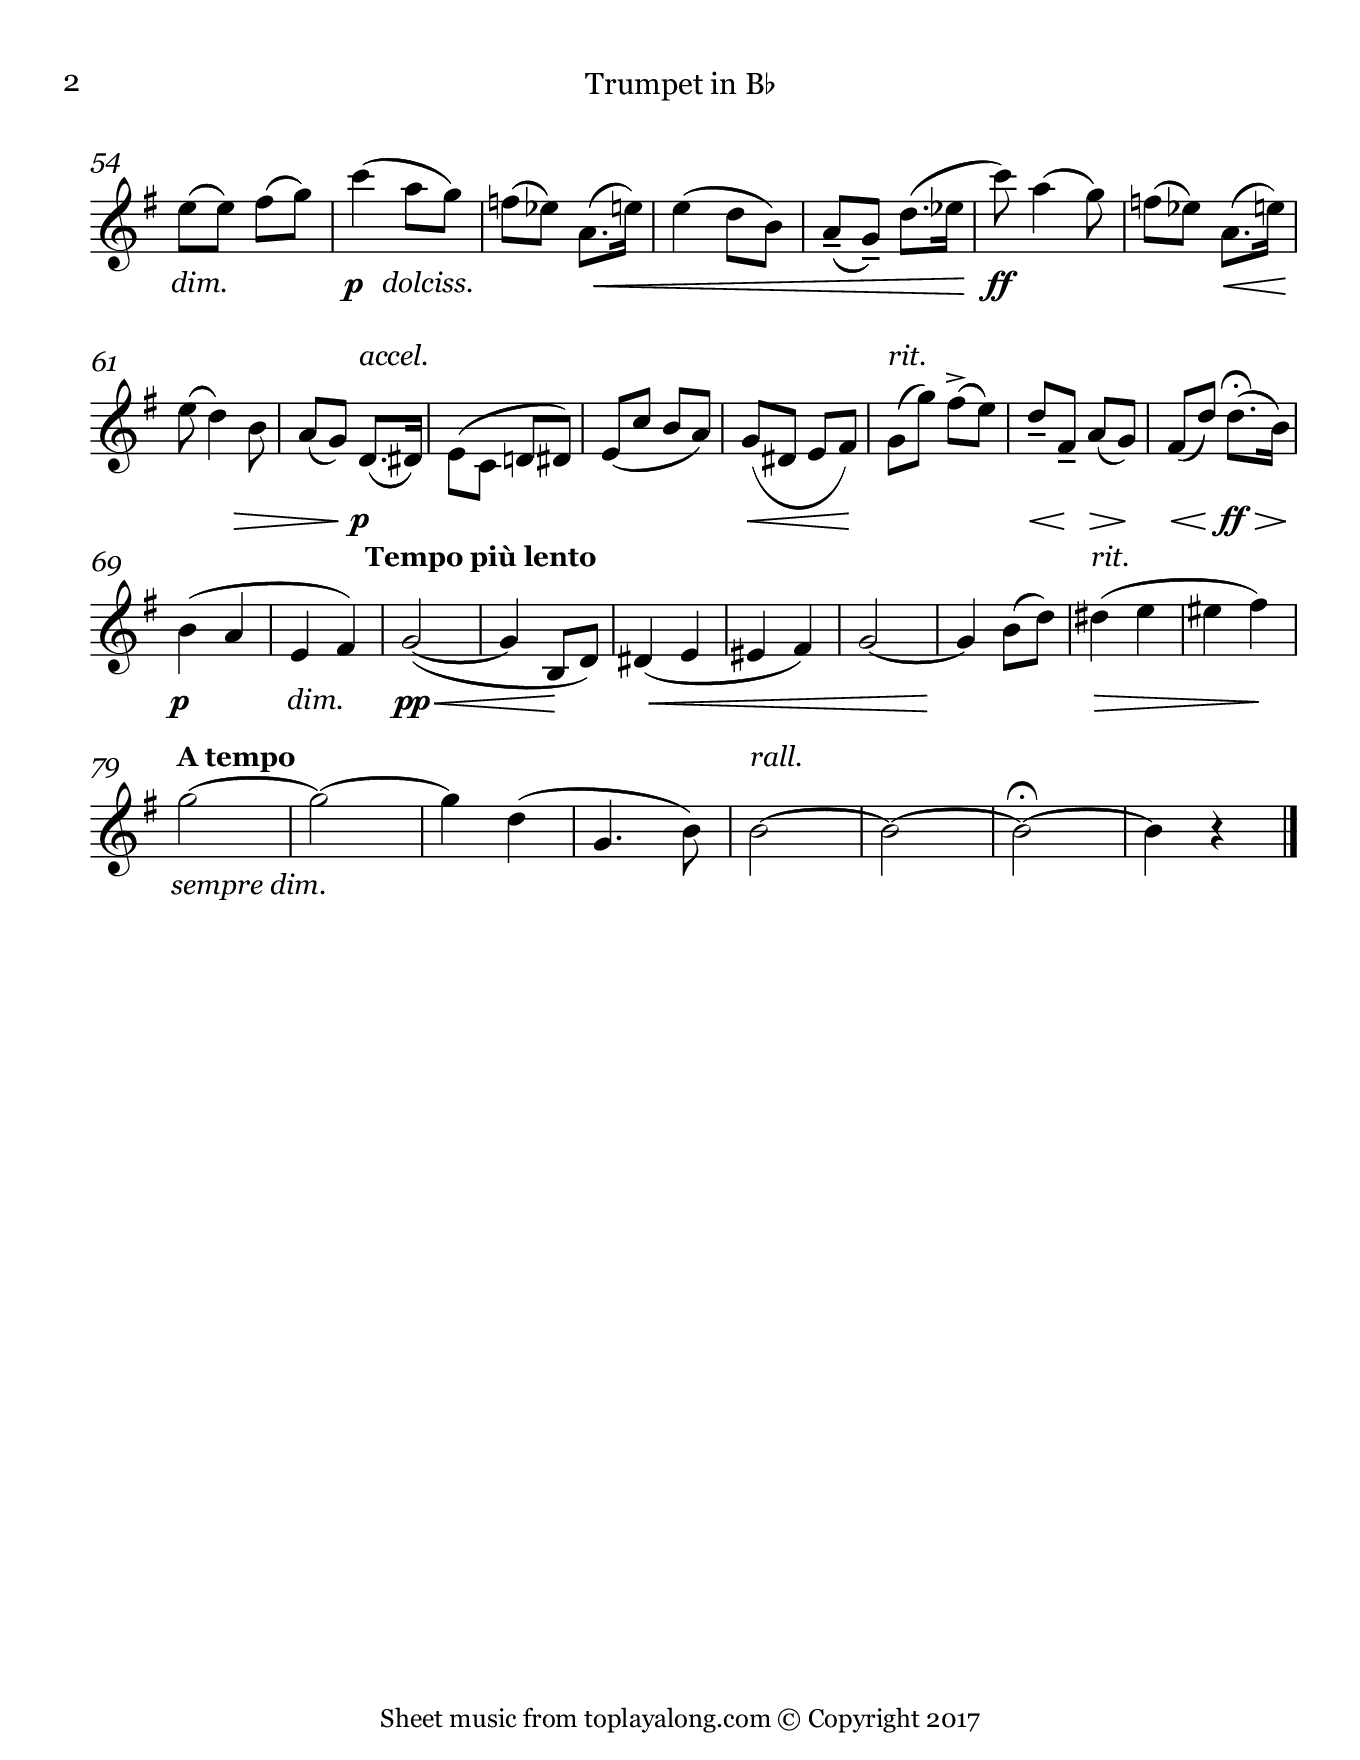 Salut d'amour by Elgar. Sheet music for Trumpet, page 2.